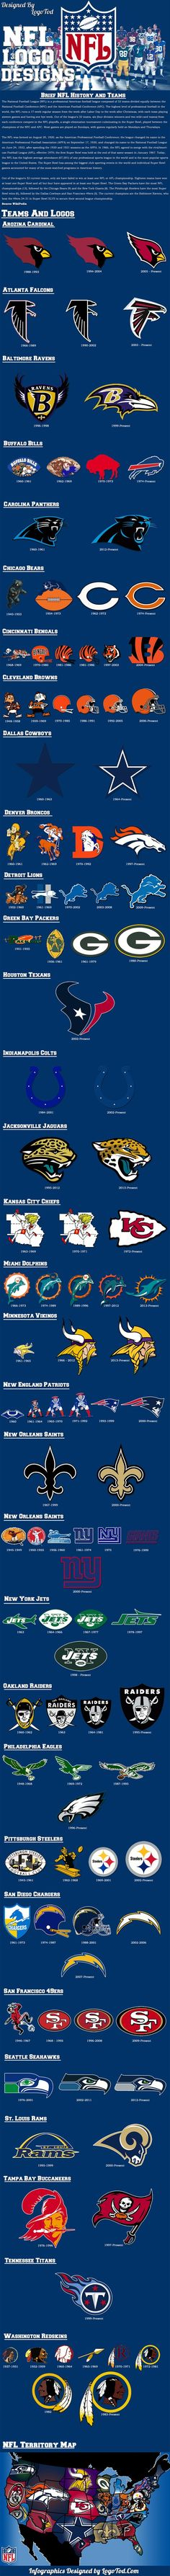 History of NFL Logo Design